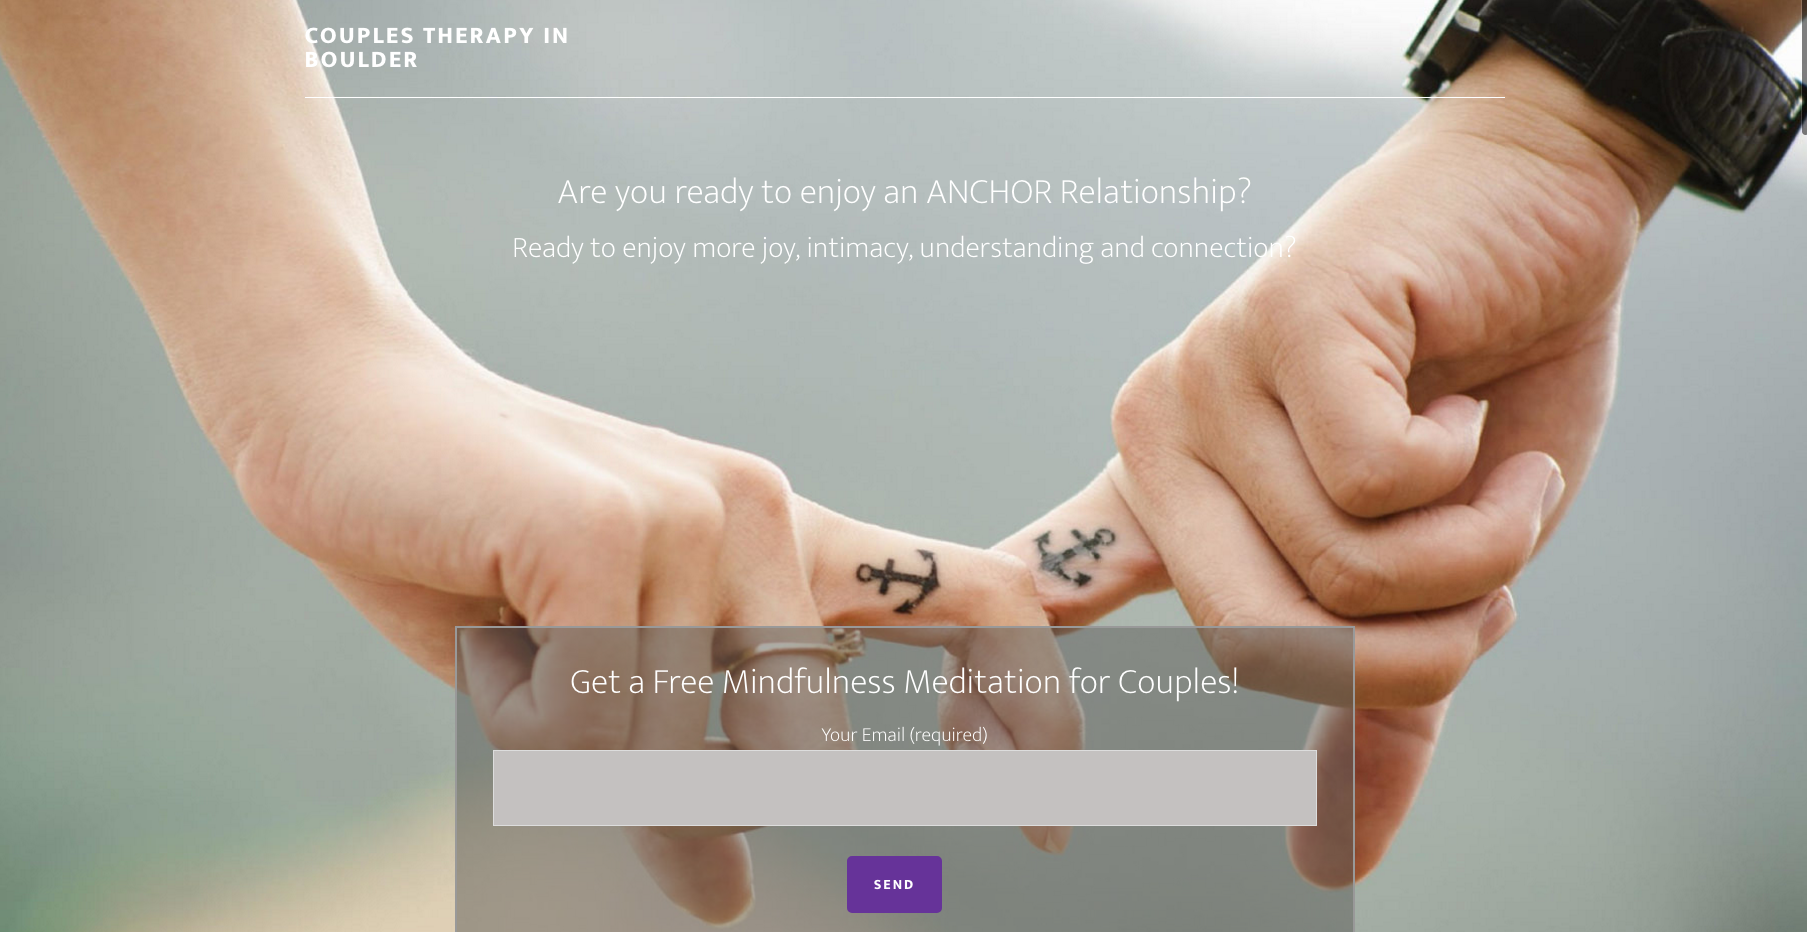 image from Couples In Boulder site